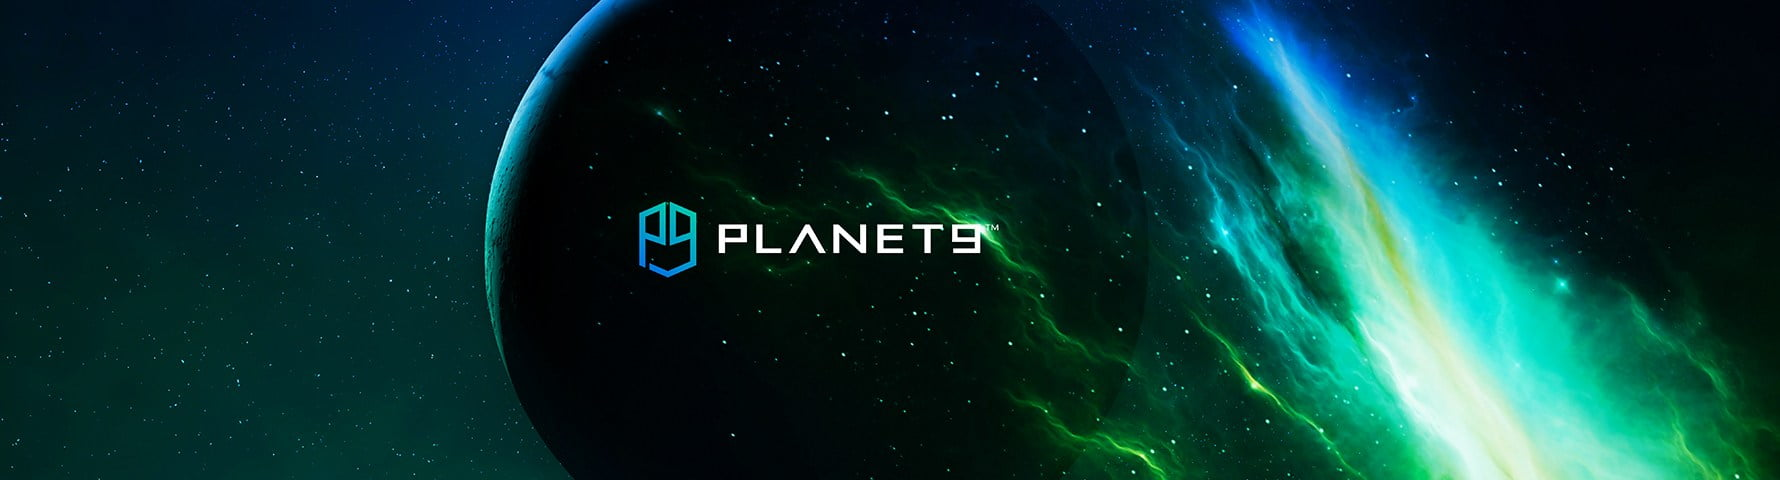 Acer Planet 9